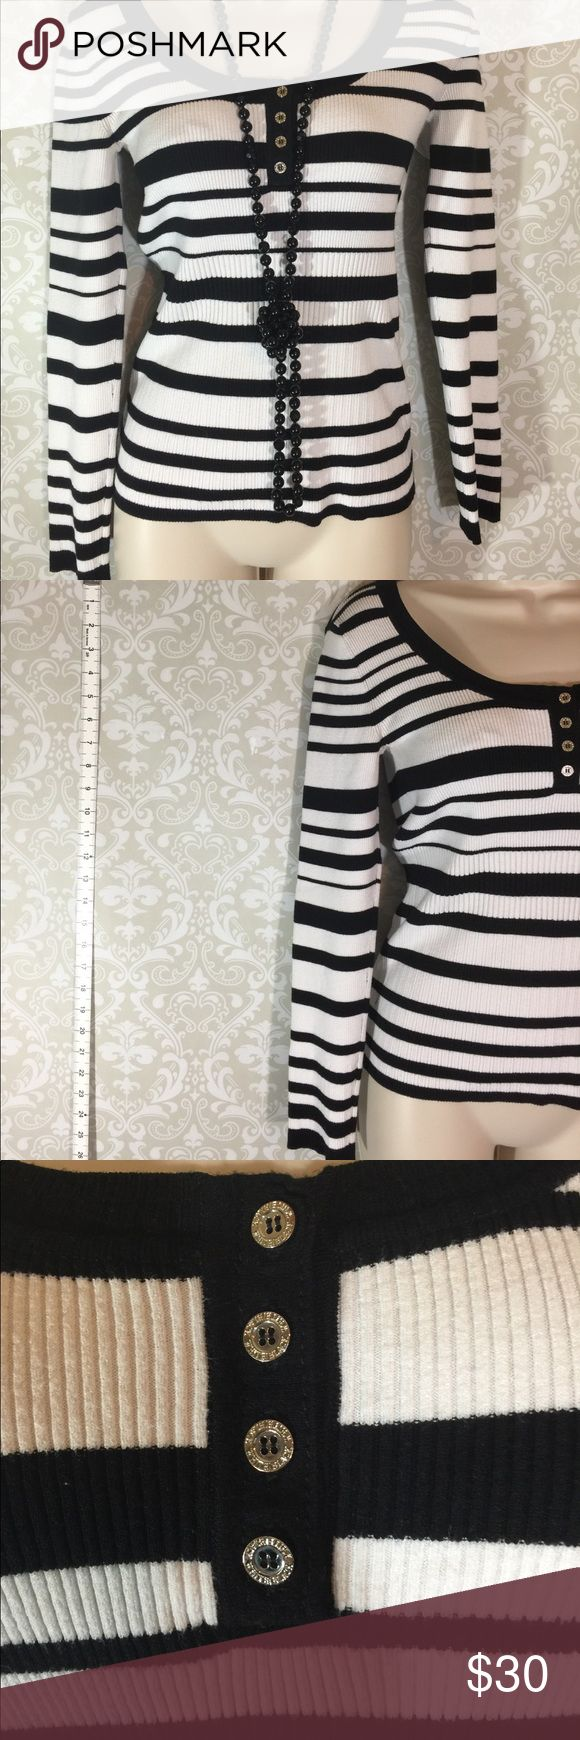 White House Black Market Sweater Super cute WHBM light weight black and white stripped sweater.  Size M.  Previously worn, cared for and loved.  Excellent condition. Please ask any question you might have.  Reasonable offers welcome.  Bundle for savings.  Thank you for shopping in my closet! White House Black Market Sweaters Crew & Scoop Necks